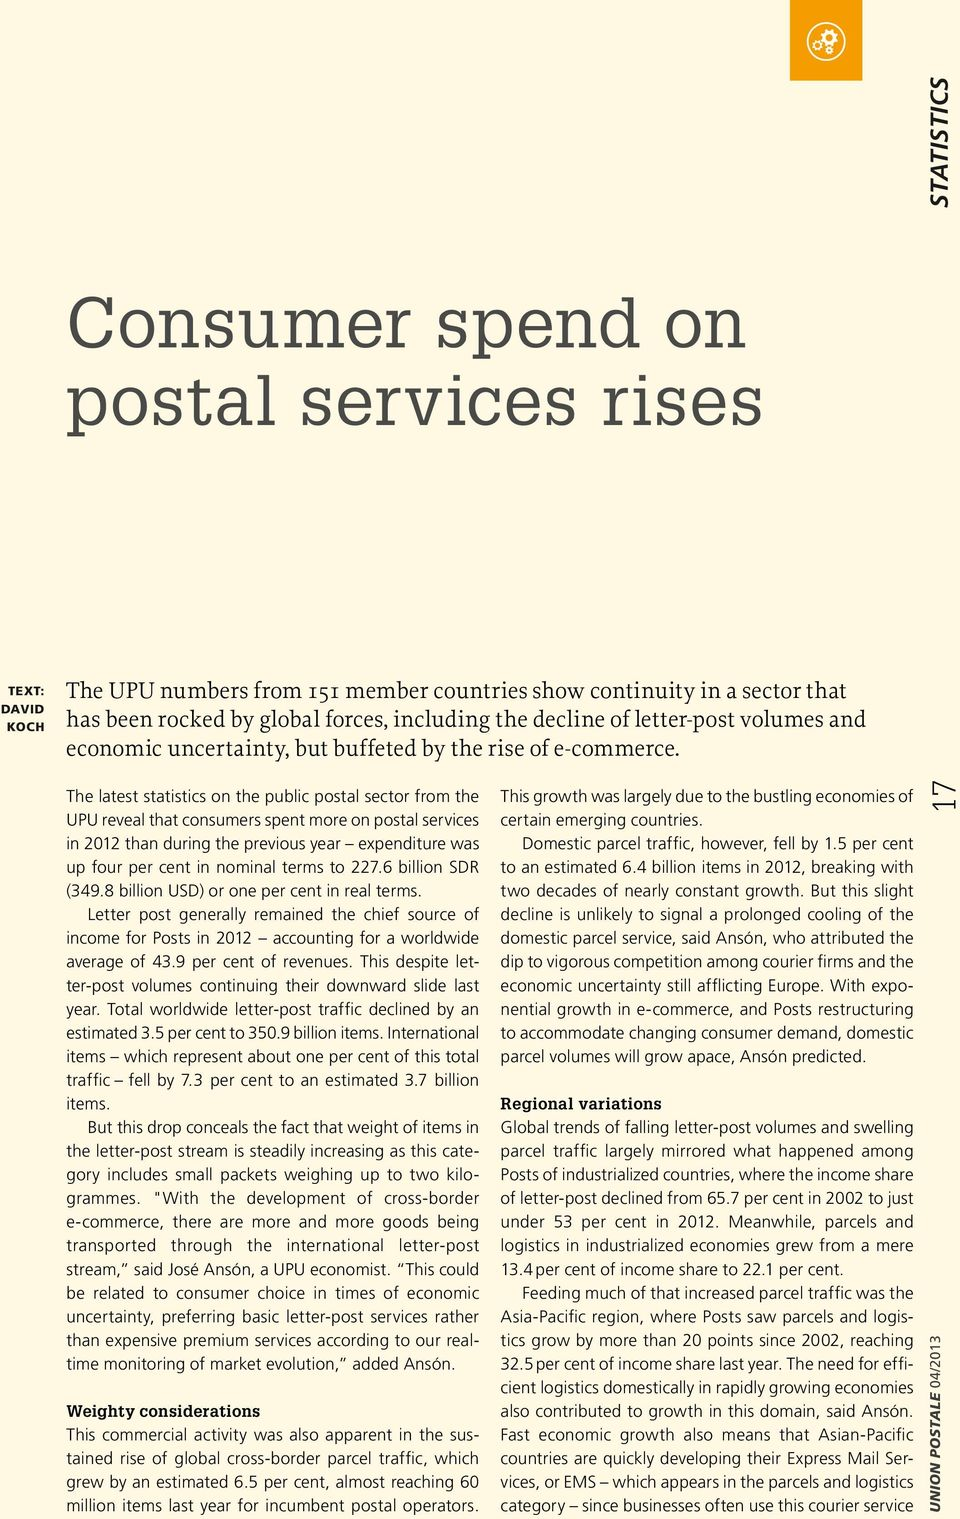 The latest statistics on the public postal sector from the UPU reveal that consumers spent more on postal services in 2012 than during the previous year expenditure was up four per cent in nominal